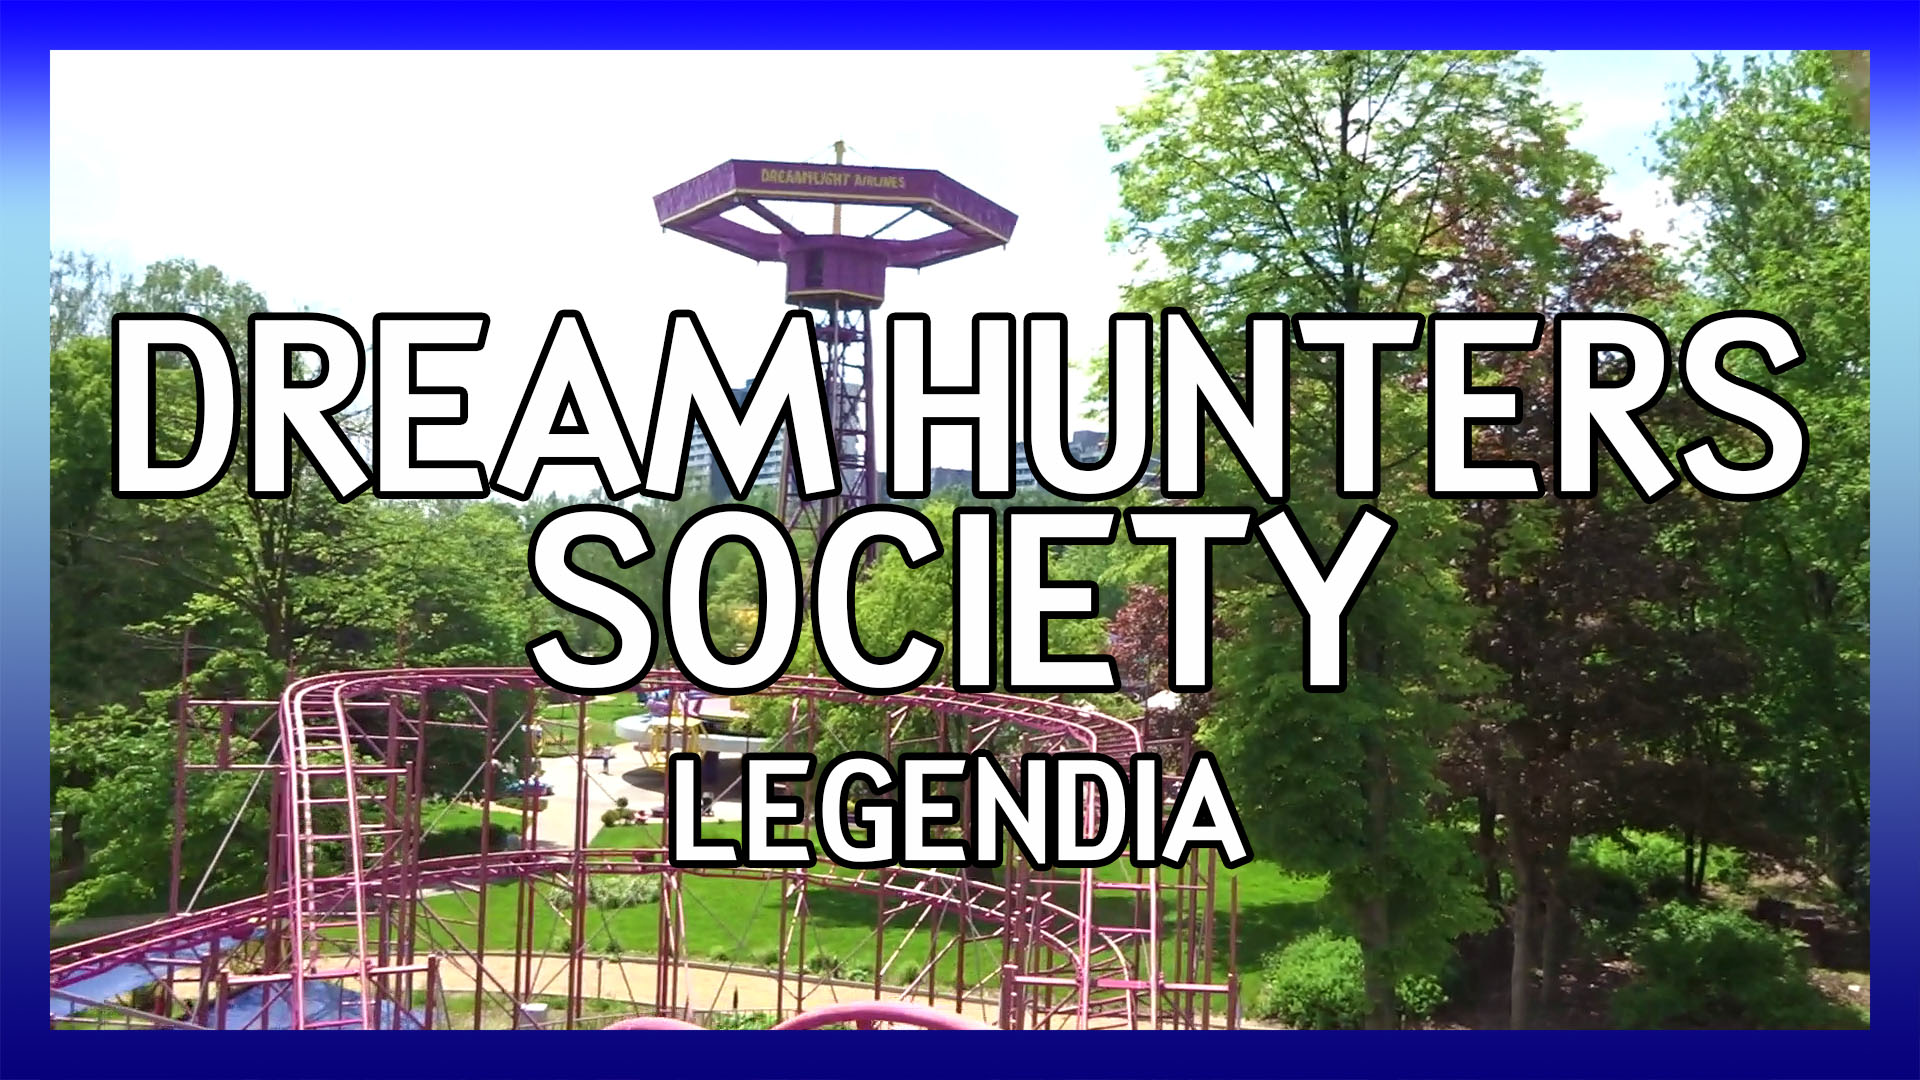 Legendia Dream Hunters Society POV video